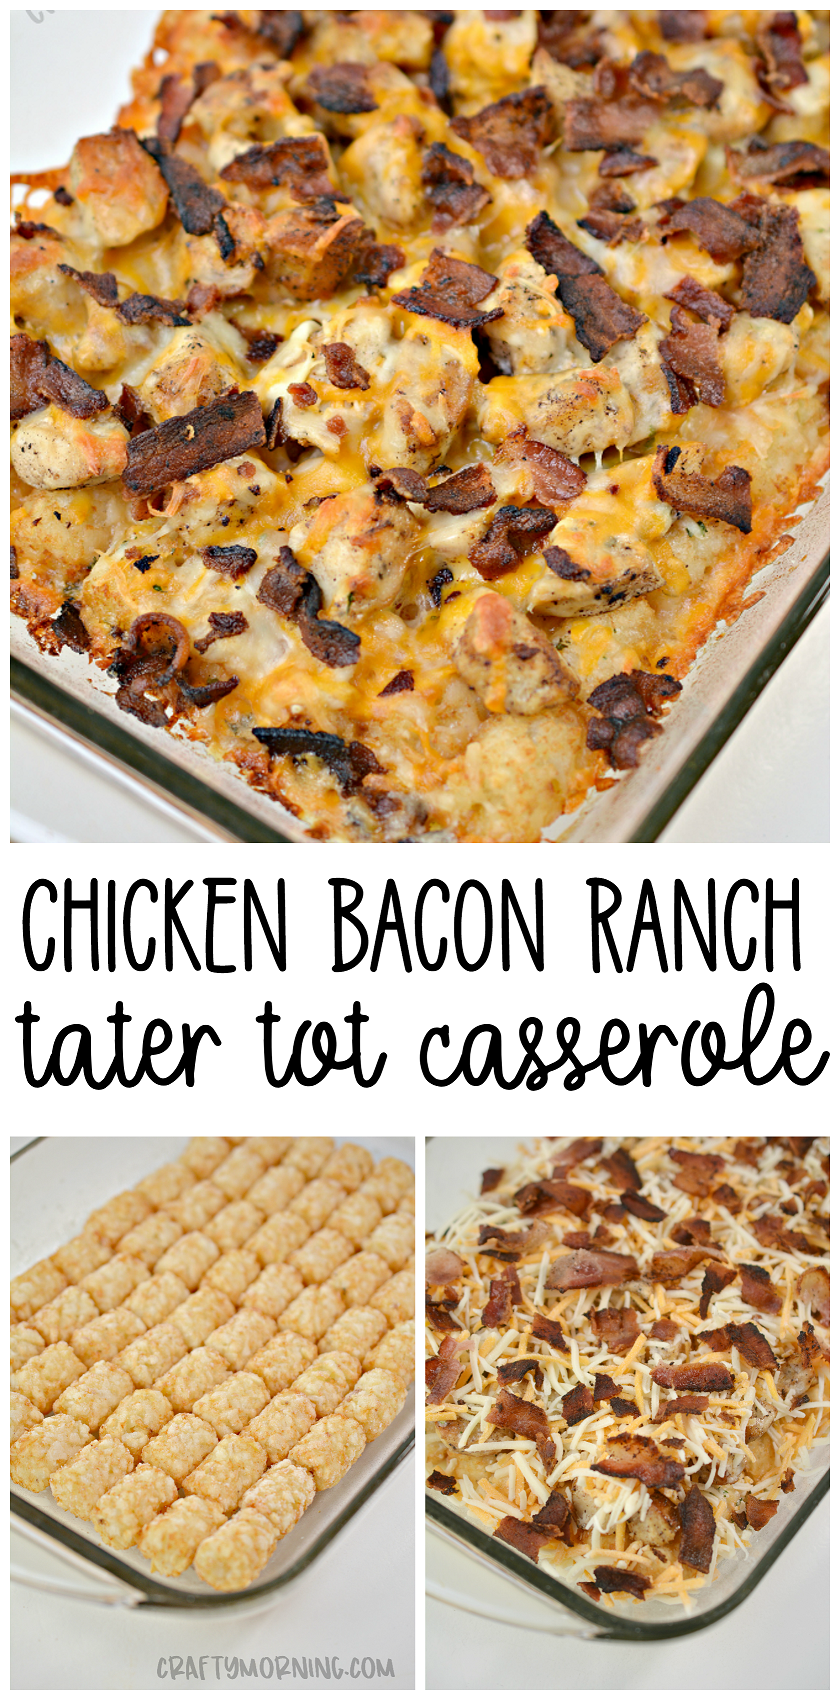 Chicken Bacon Ranch Tater Tot Casserole images